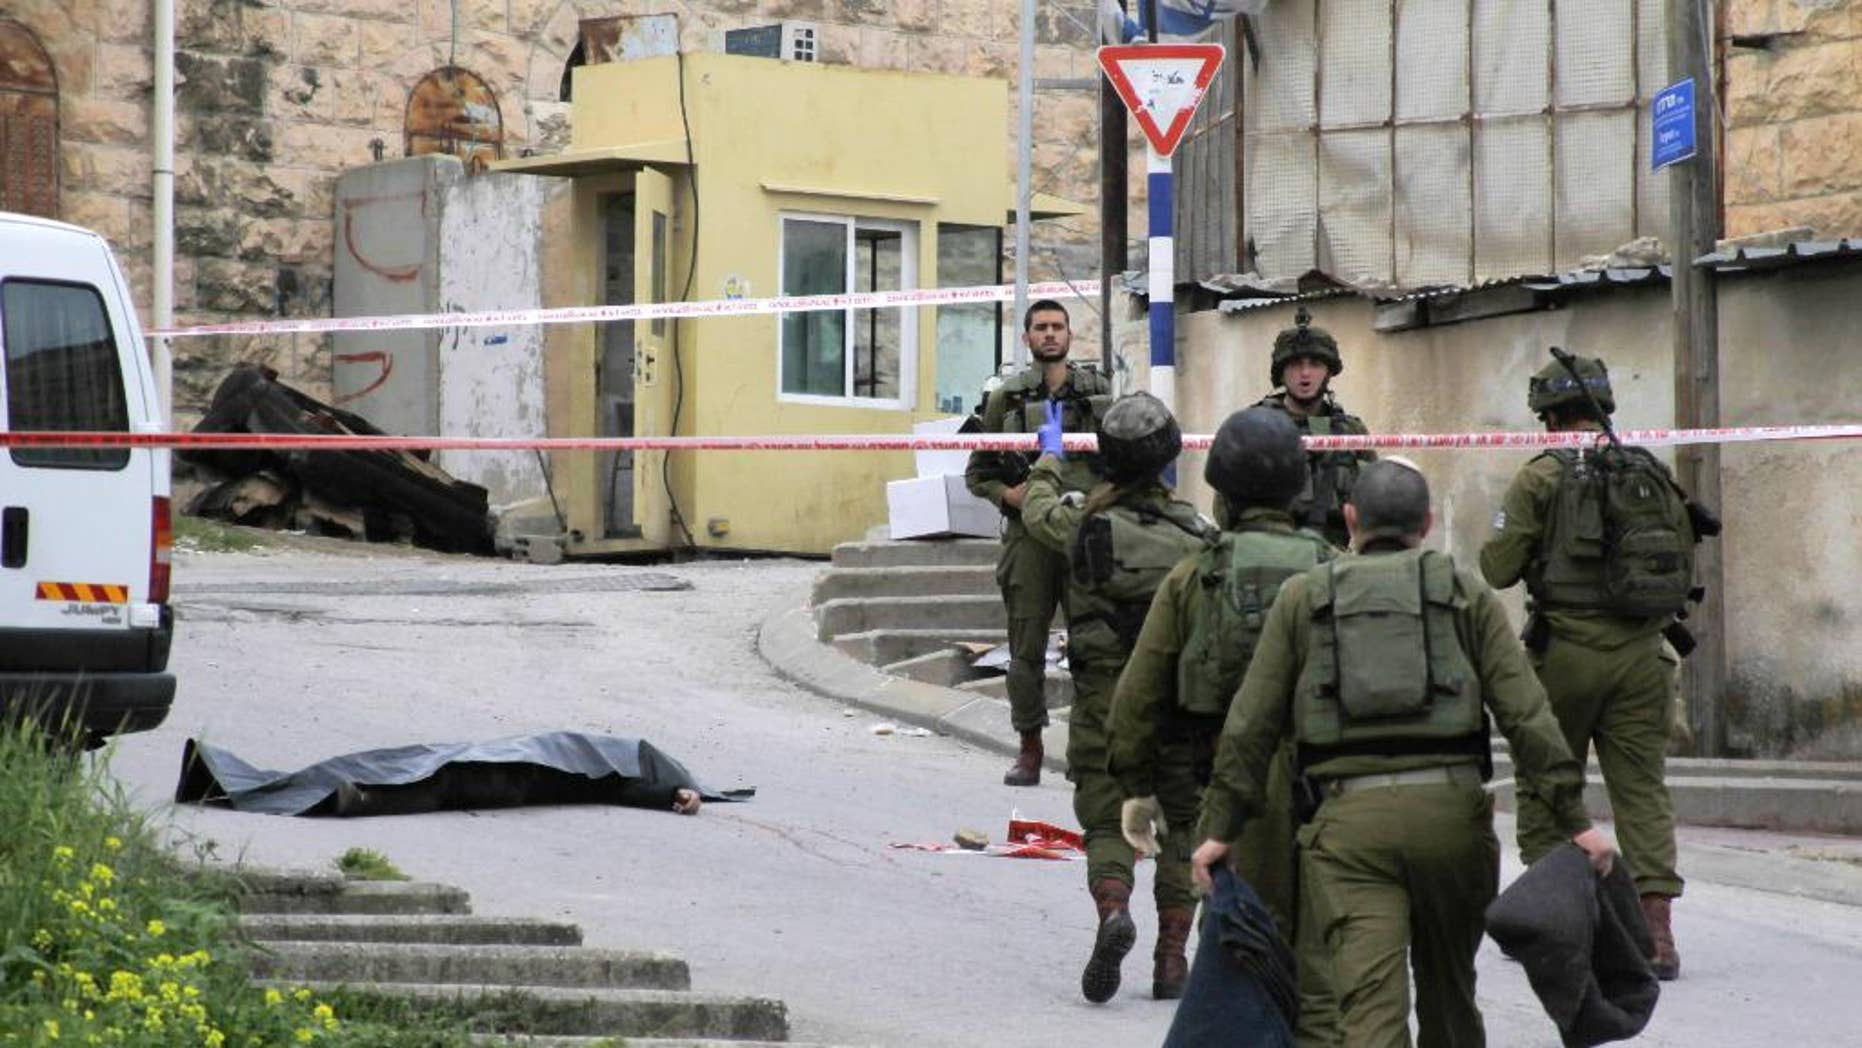 FILE - In this Thursday, March 24, 2016 file photo, Israeli soldiers stand near the body of a Palestinian who was shot and killed by a soldier while laying wounded on the ground after a stabbing attack in Hebron, West Bank.  Israeli Prime Minister Benjamin Netanyahu defended the military Sunday, March 27, 2016 following uproar over footage of a soldier lethally shooting a Palestinian attacker who had already been shot and subdued. (AP Photo, File)